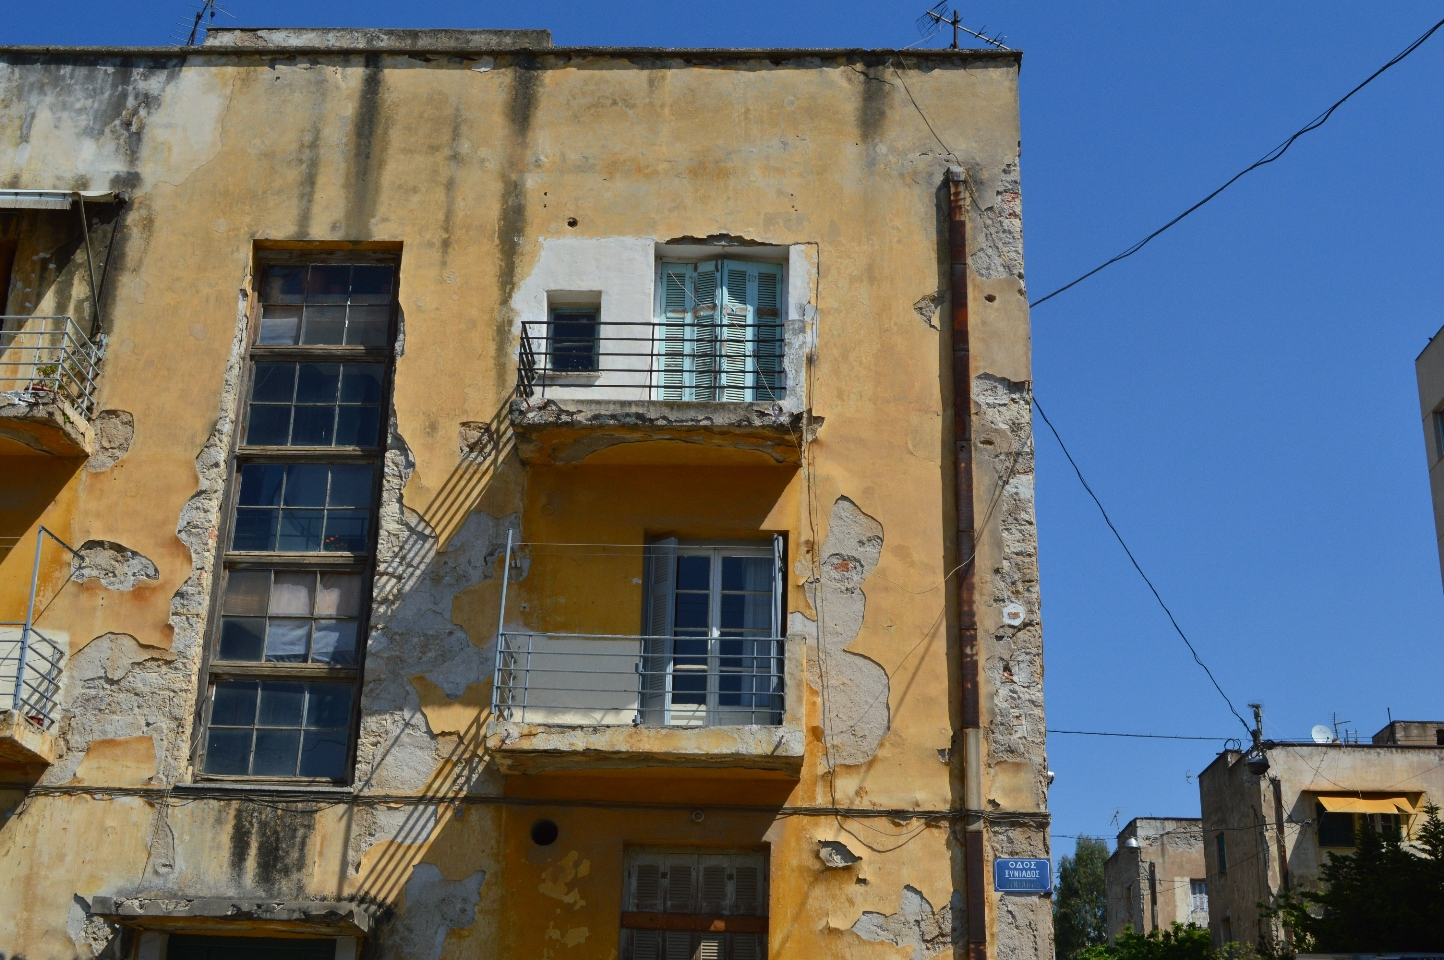 Narrow balconies on the cubical building, Former Refugee Houses, Athens, Greece